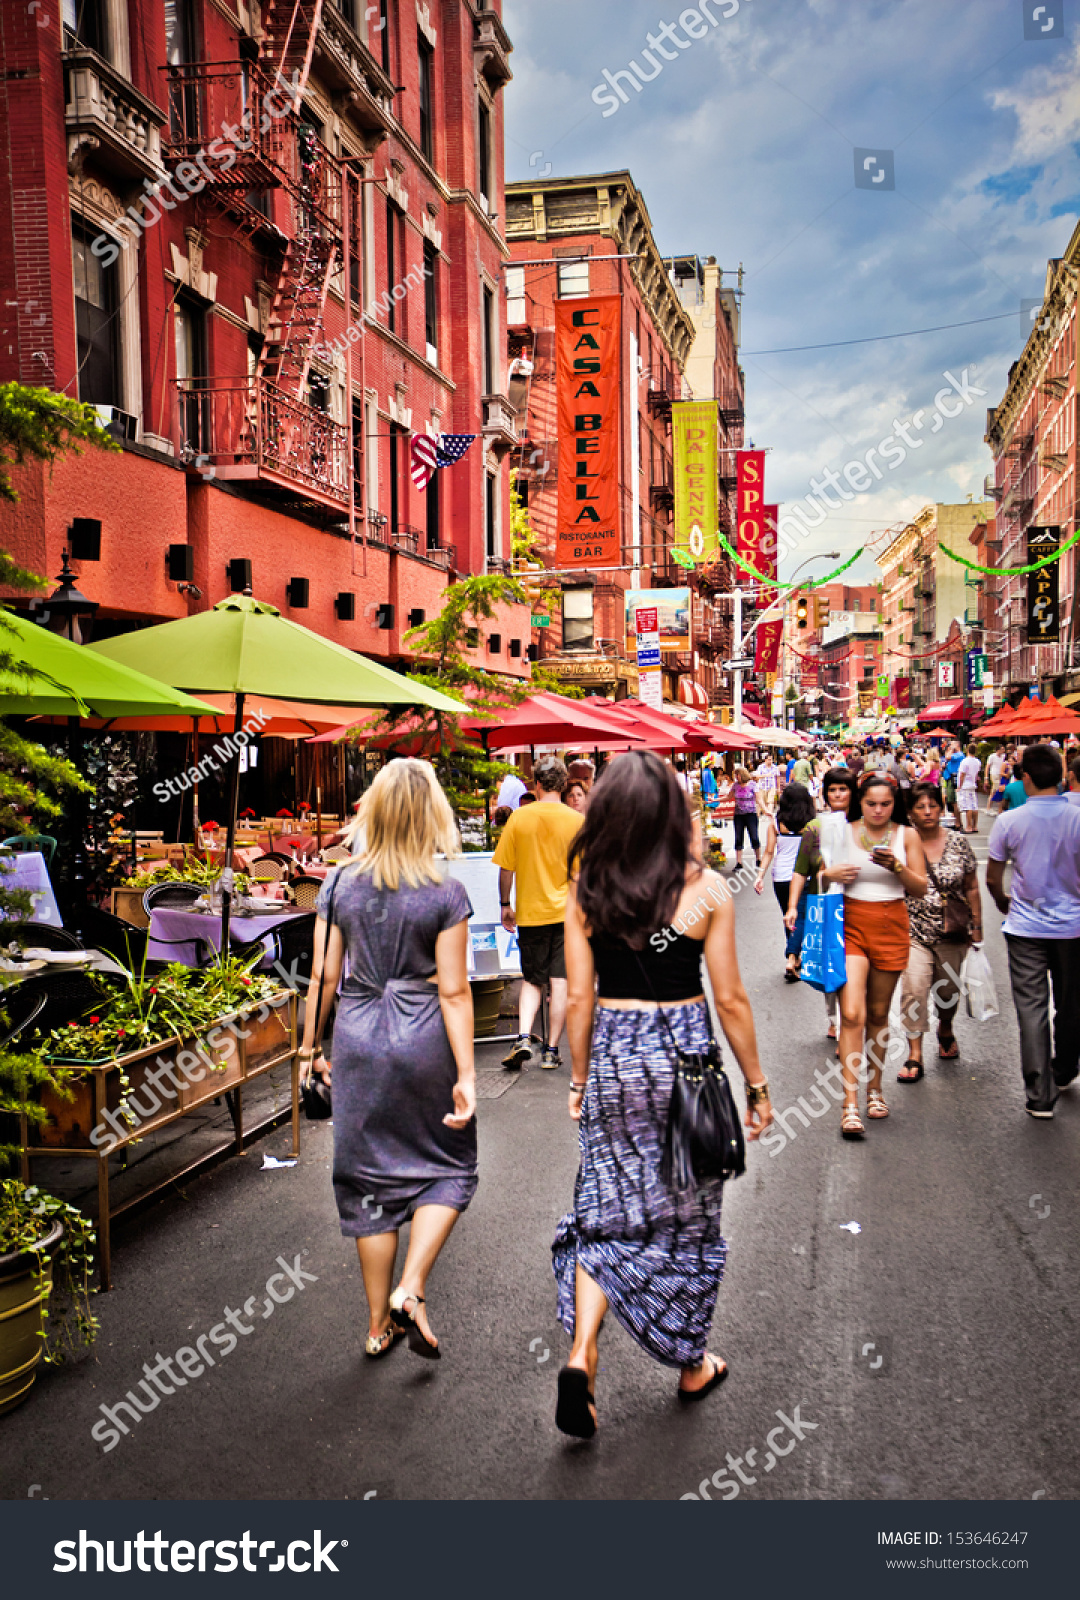 New york city aug 5 little italy famous for its for Events going on in new york city